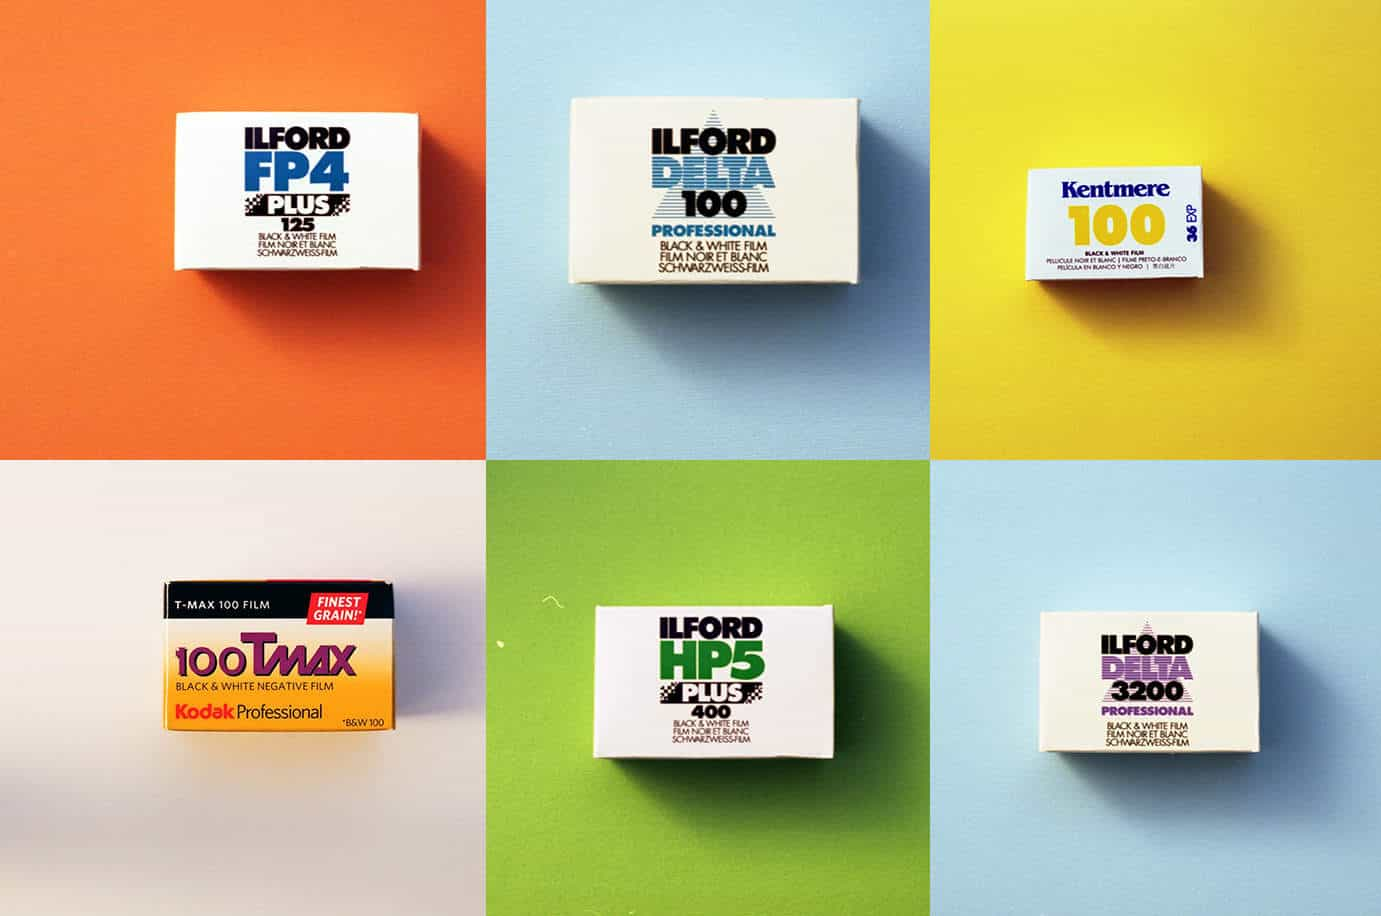 B&W Bestsellers - Black and White Film Combo Pack (35mm Film, 6 rolls)